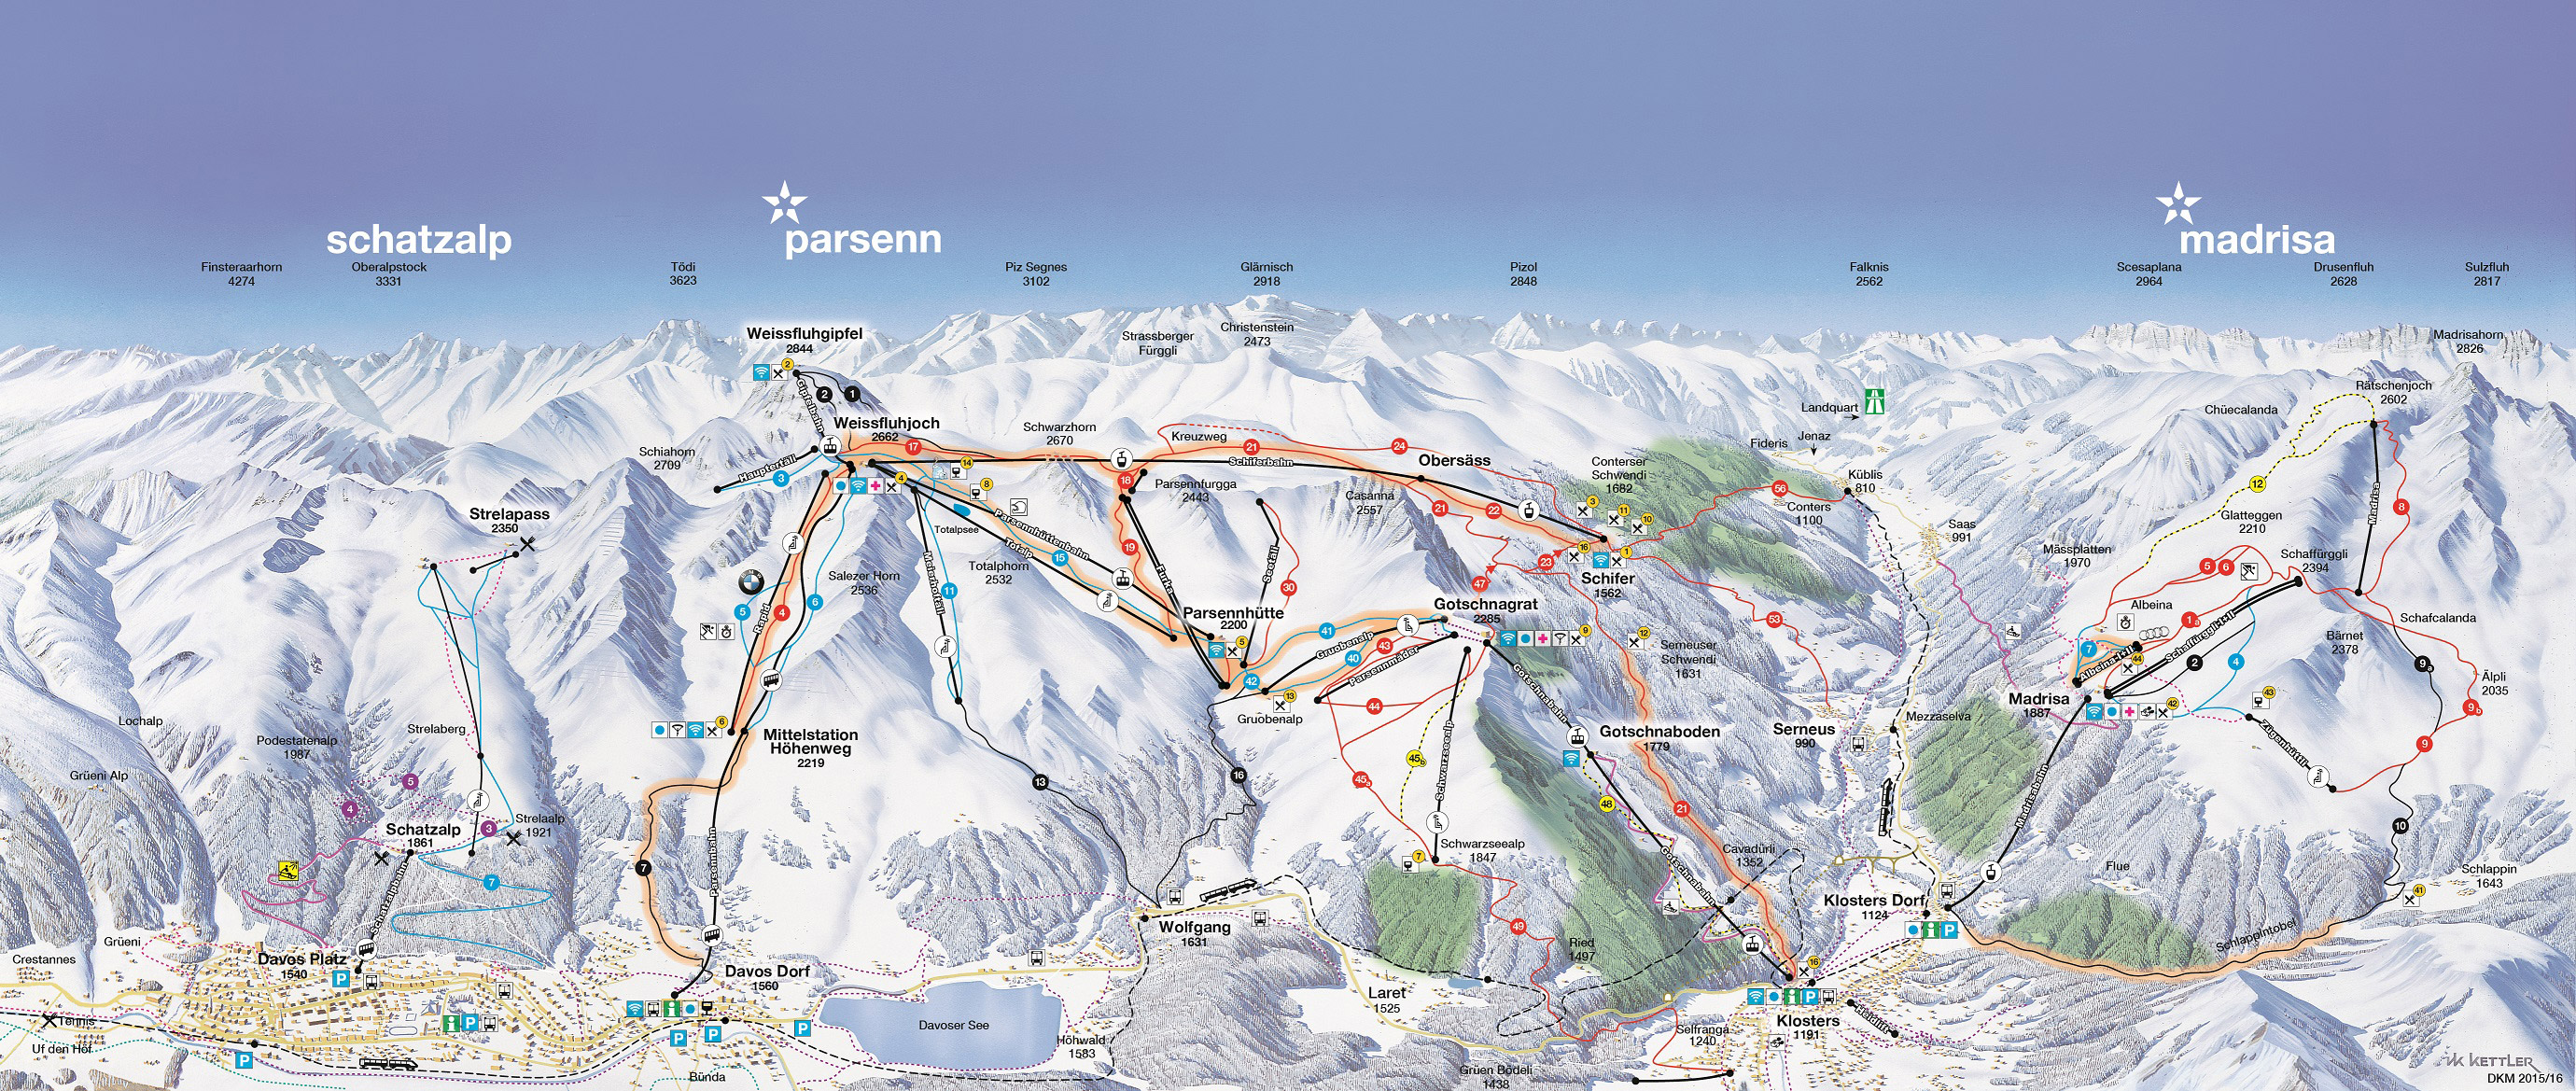 Davos Klosters Piste Map One